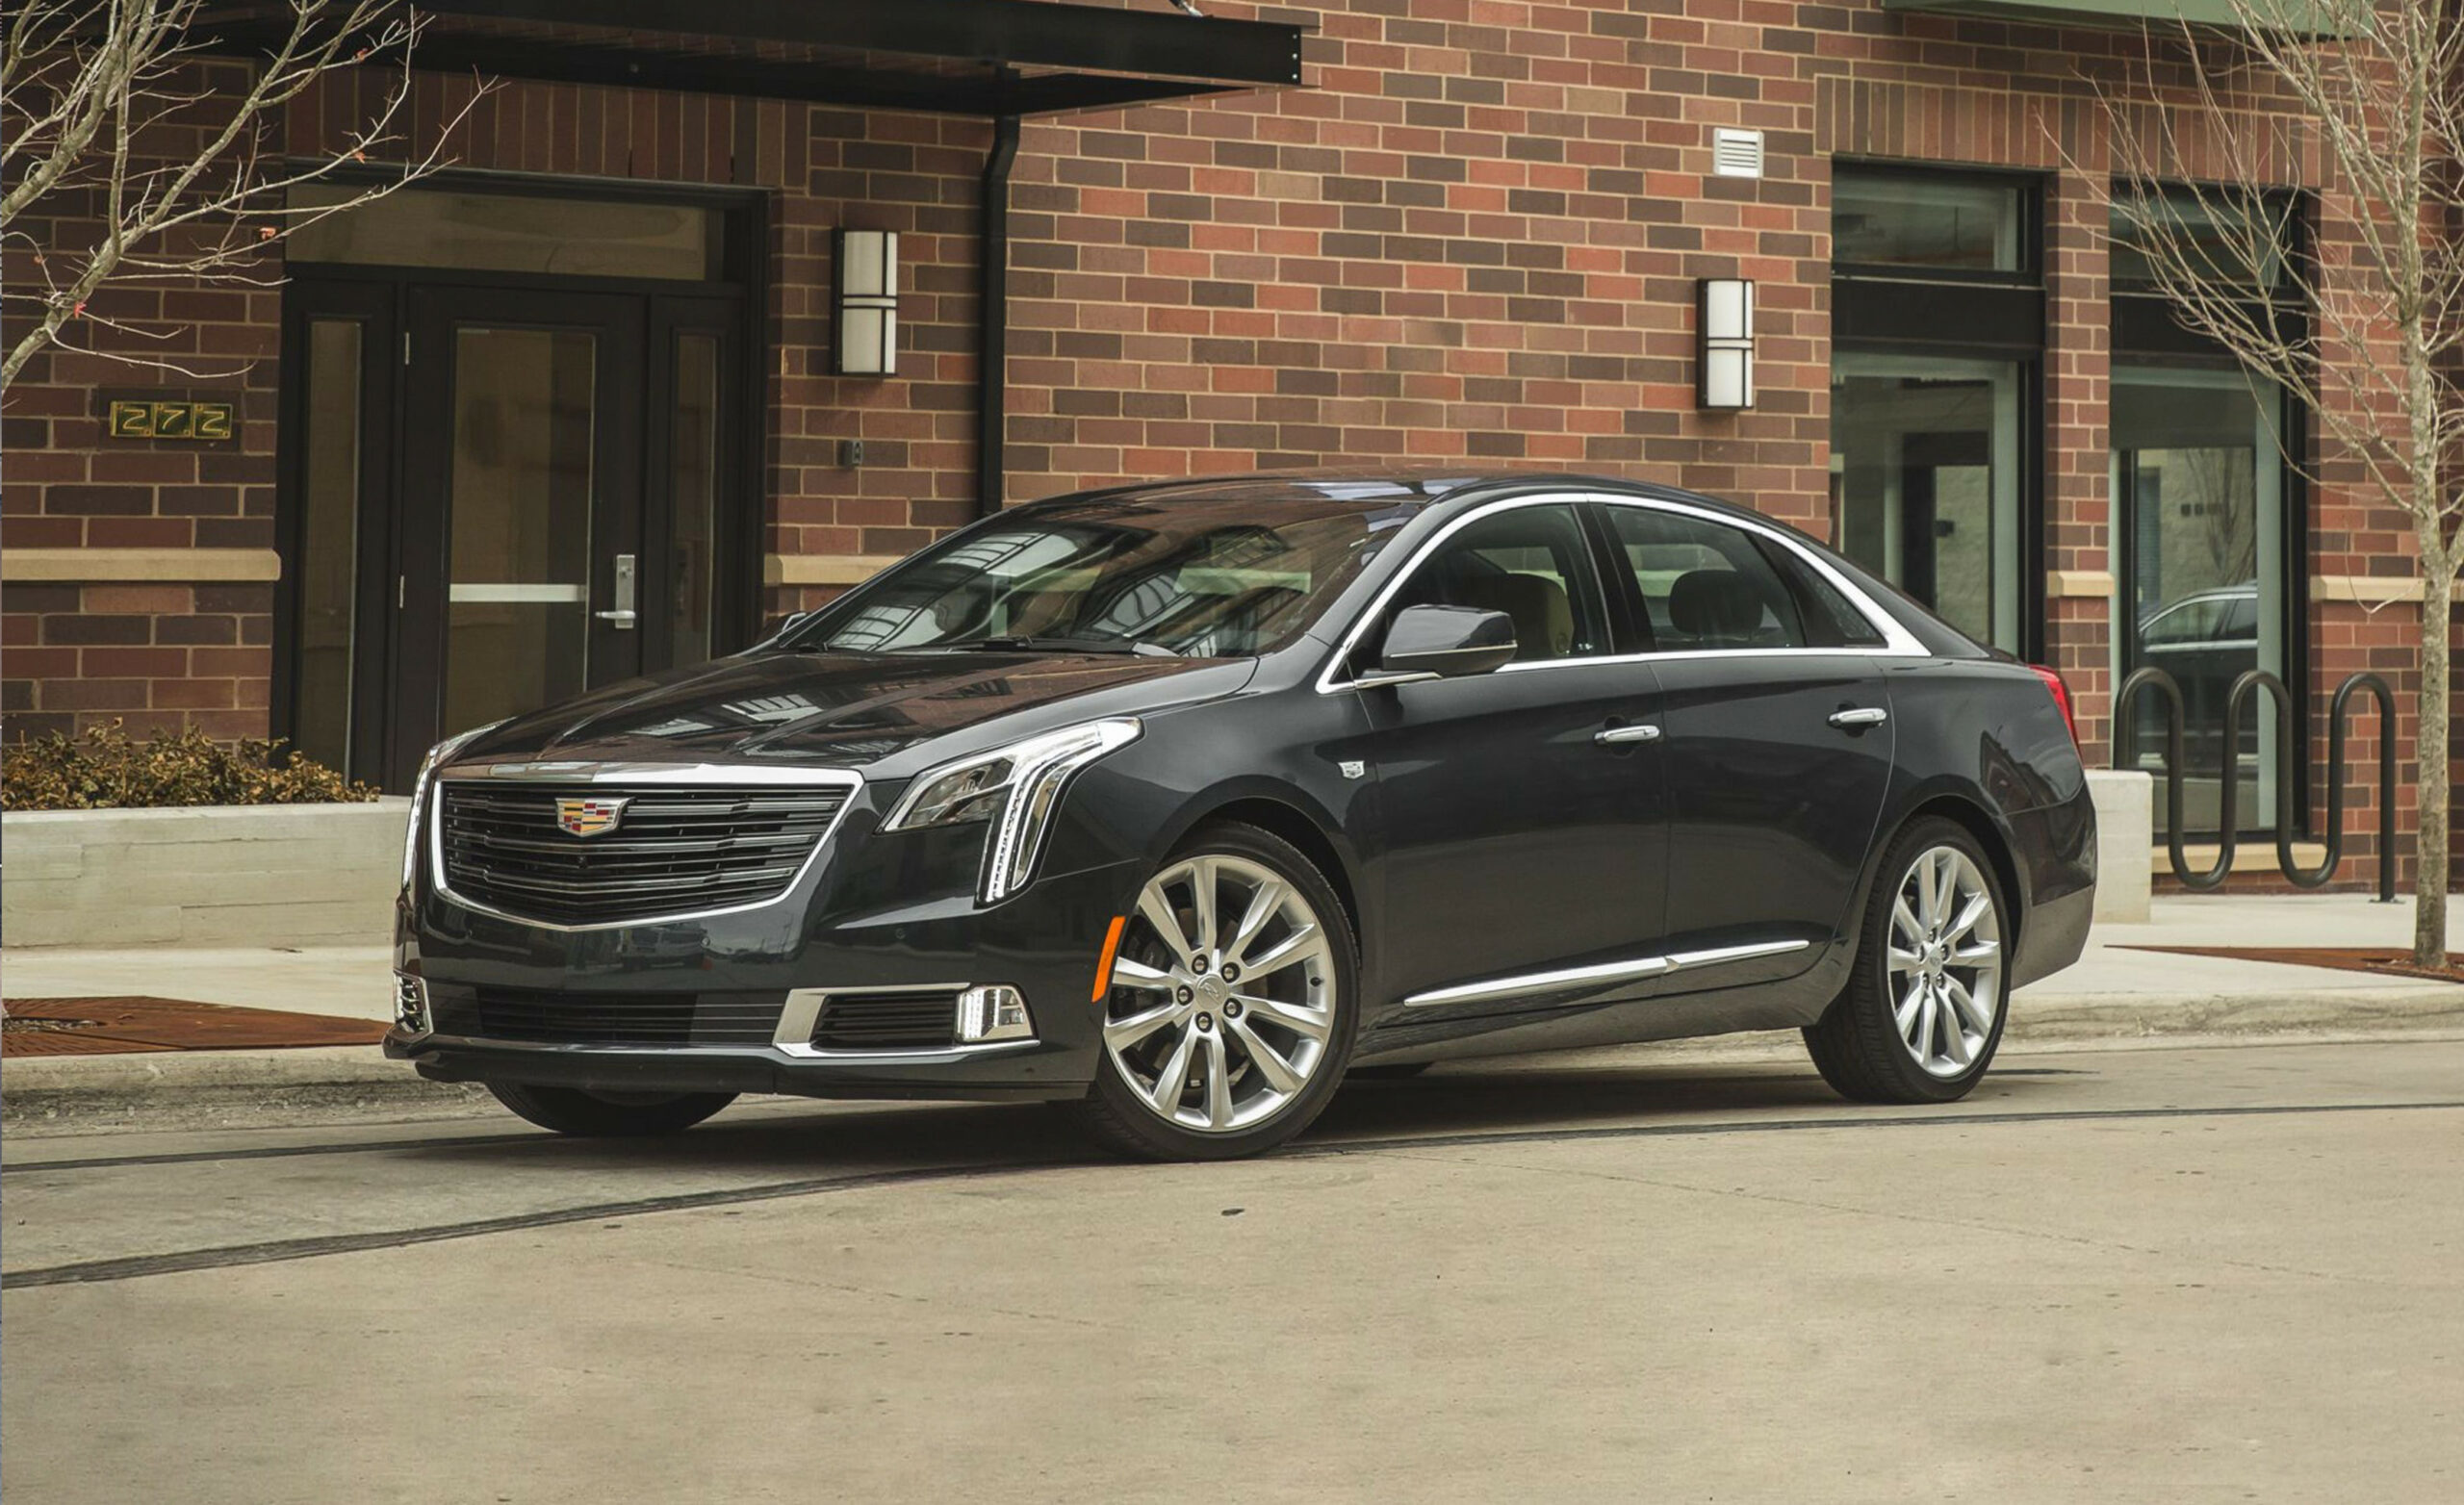 11 Cadillac XTS Review, Pricing, and Specs